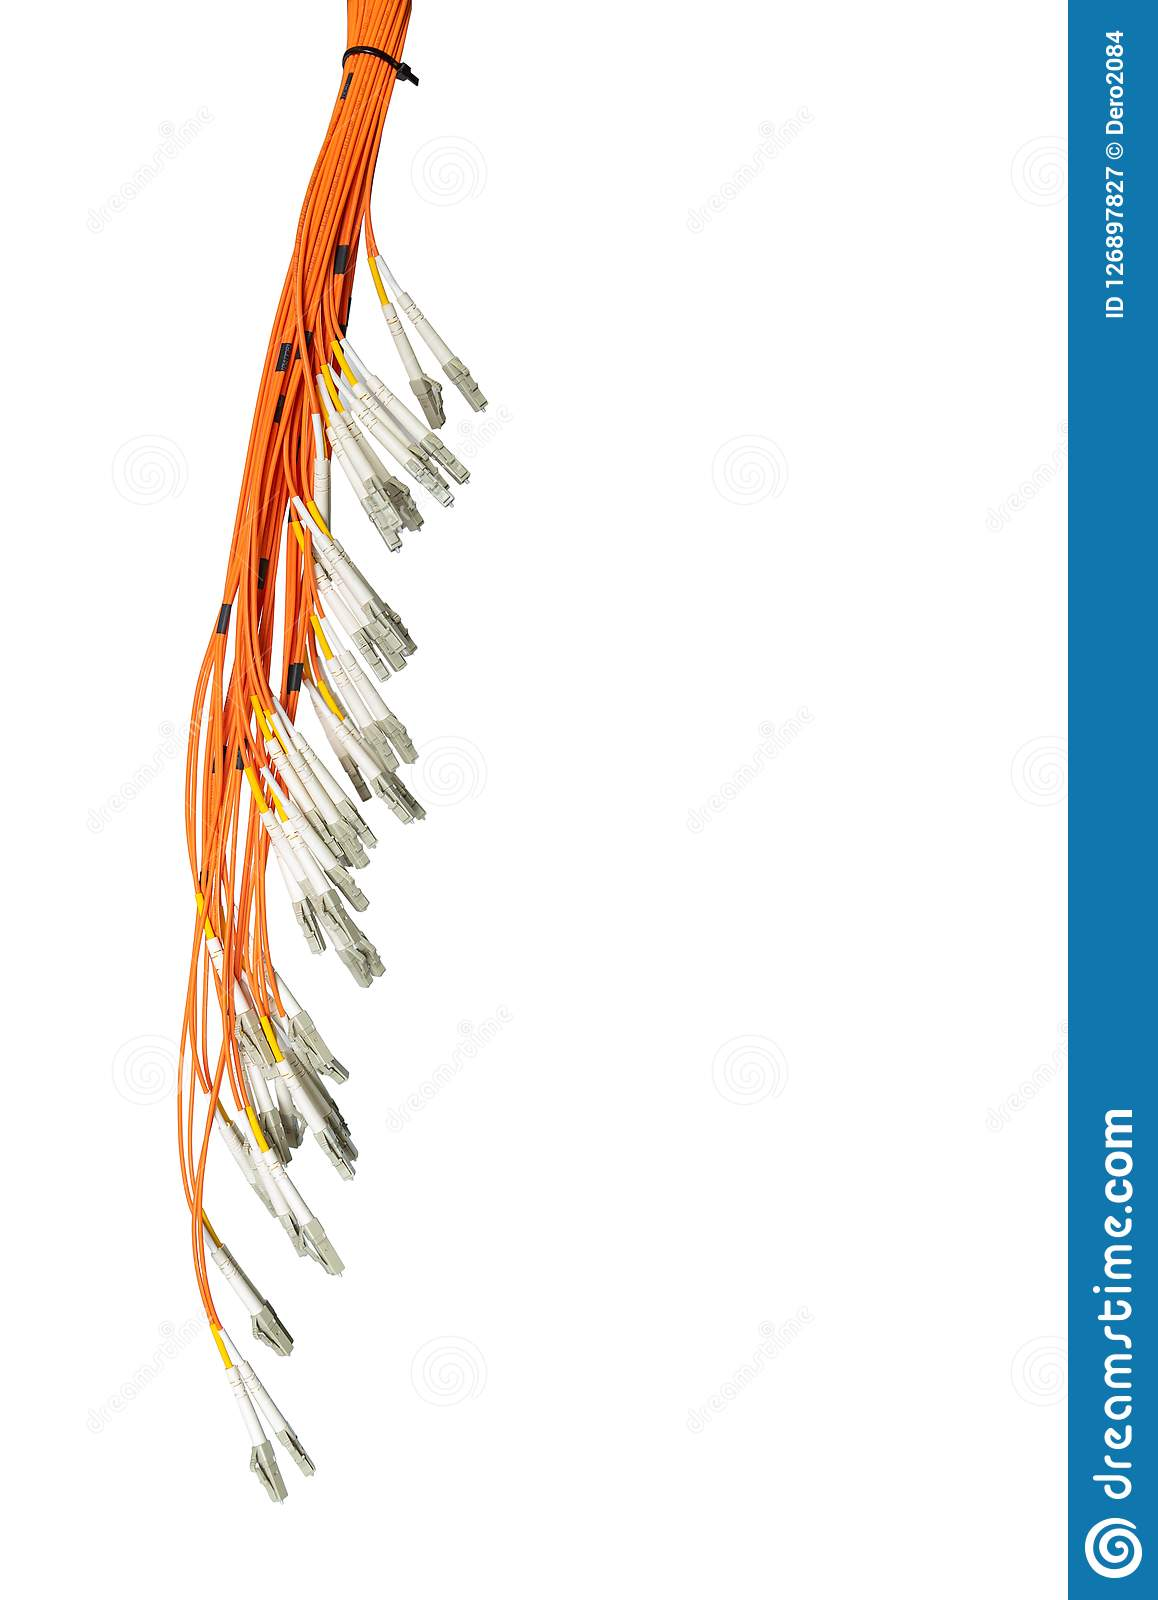 Bunch of fiber optic cables and connectors, isolated on white background. IT technology, data transmission channel